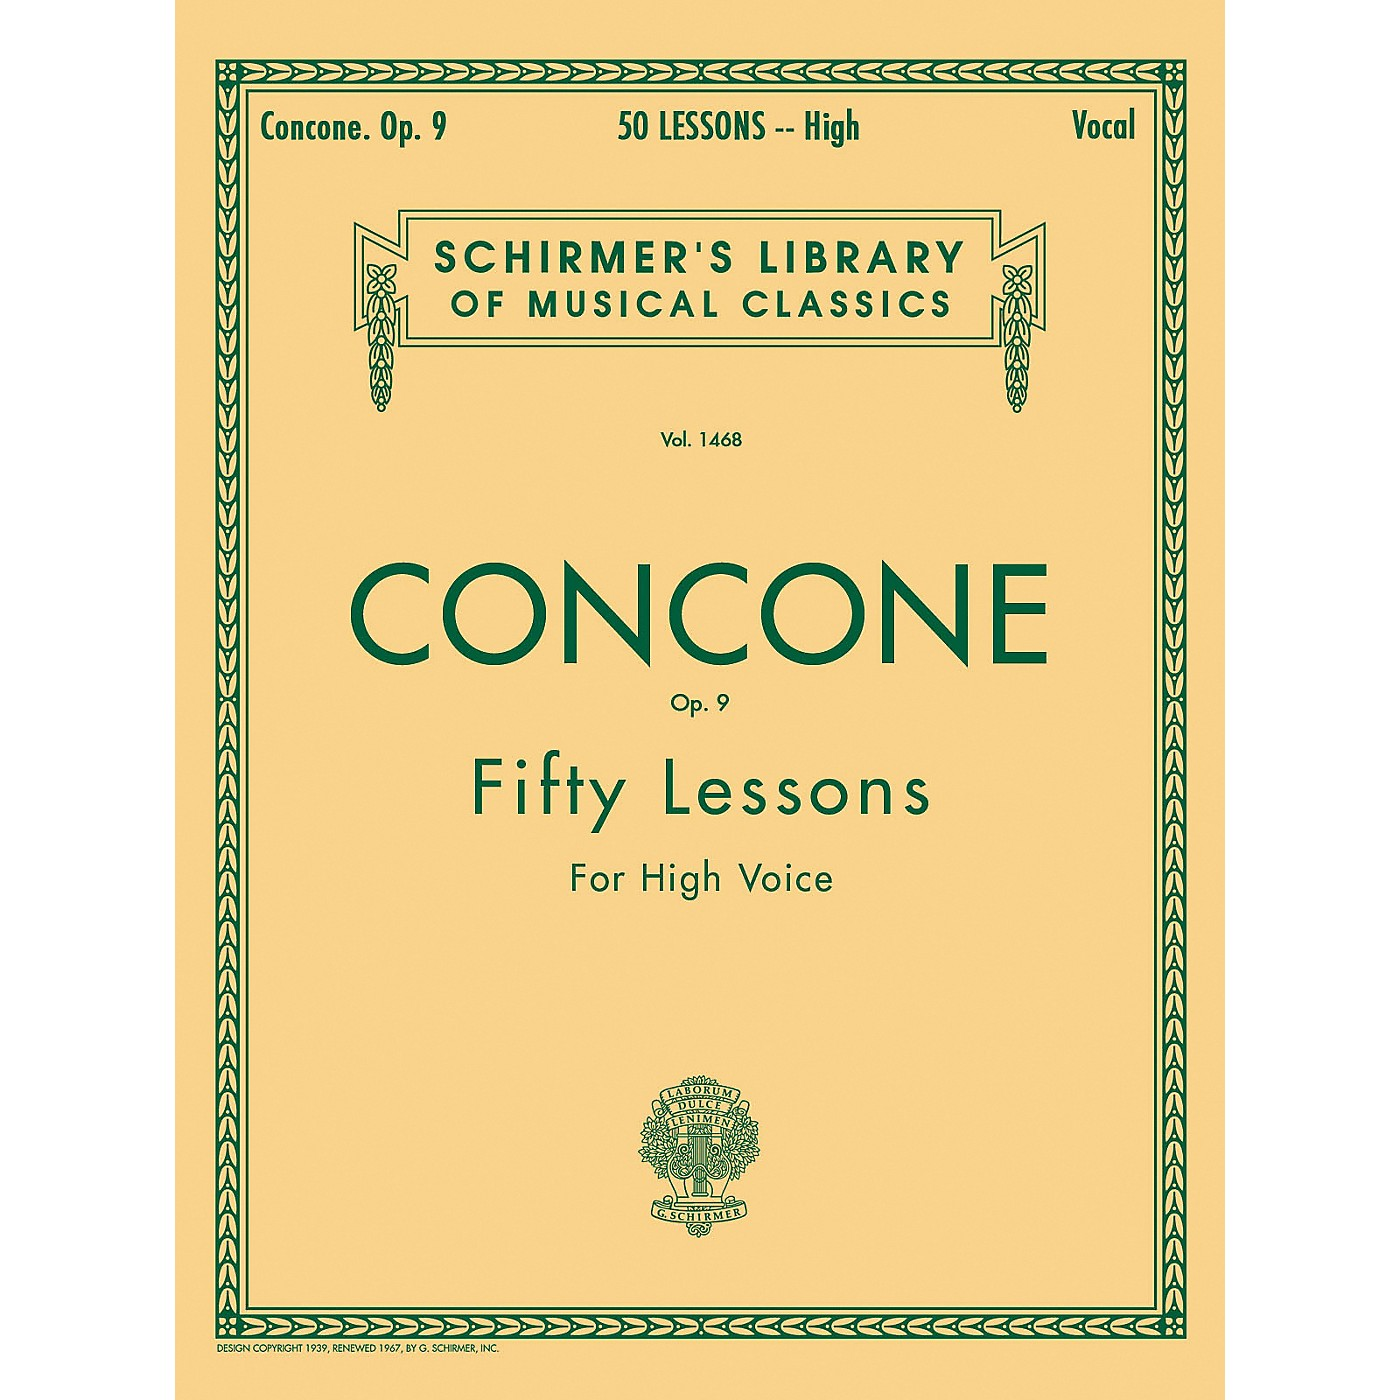 G. Schirmer 50 Lessons, Op. 9 by Concone for High Voice thumbnail